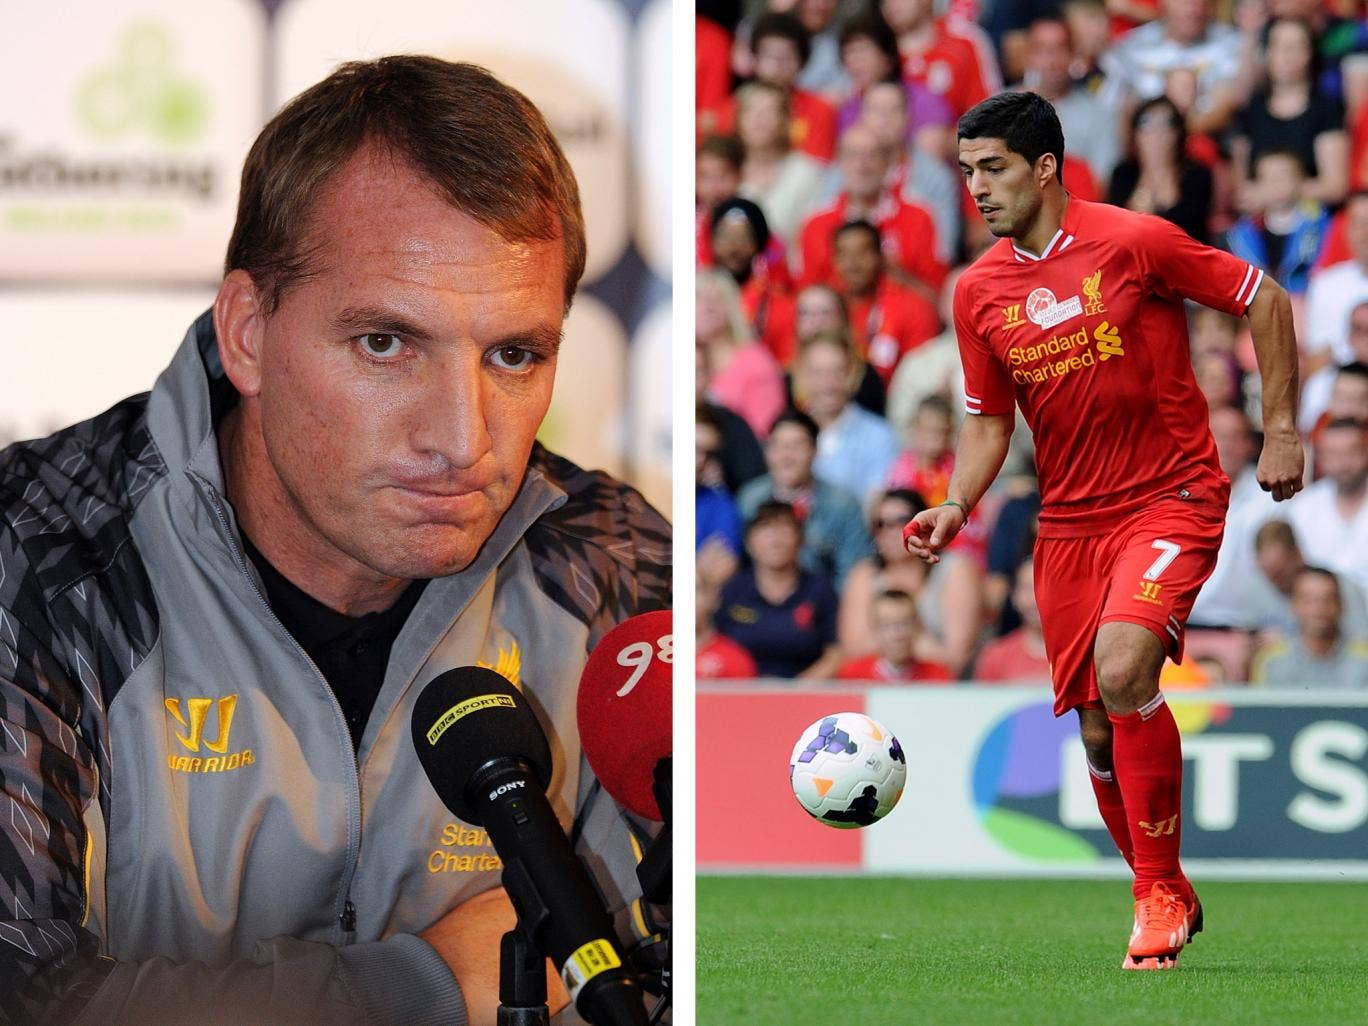 Brendan Rodgers doesn't want to talk about Luis Suarez again until the striker is available for selection